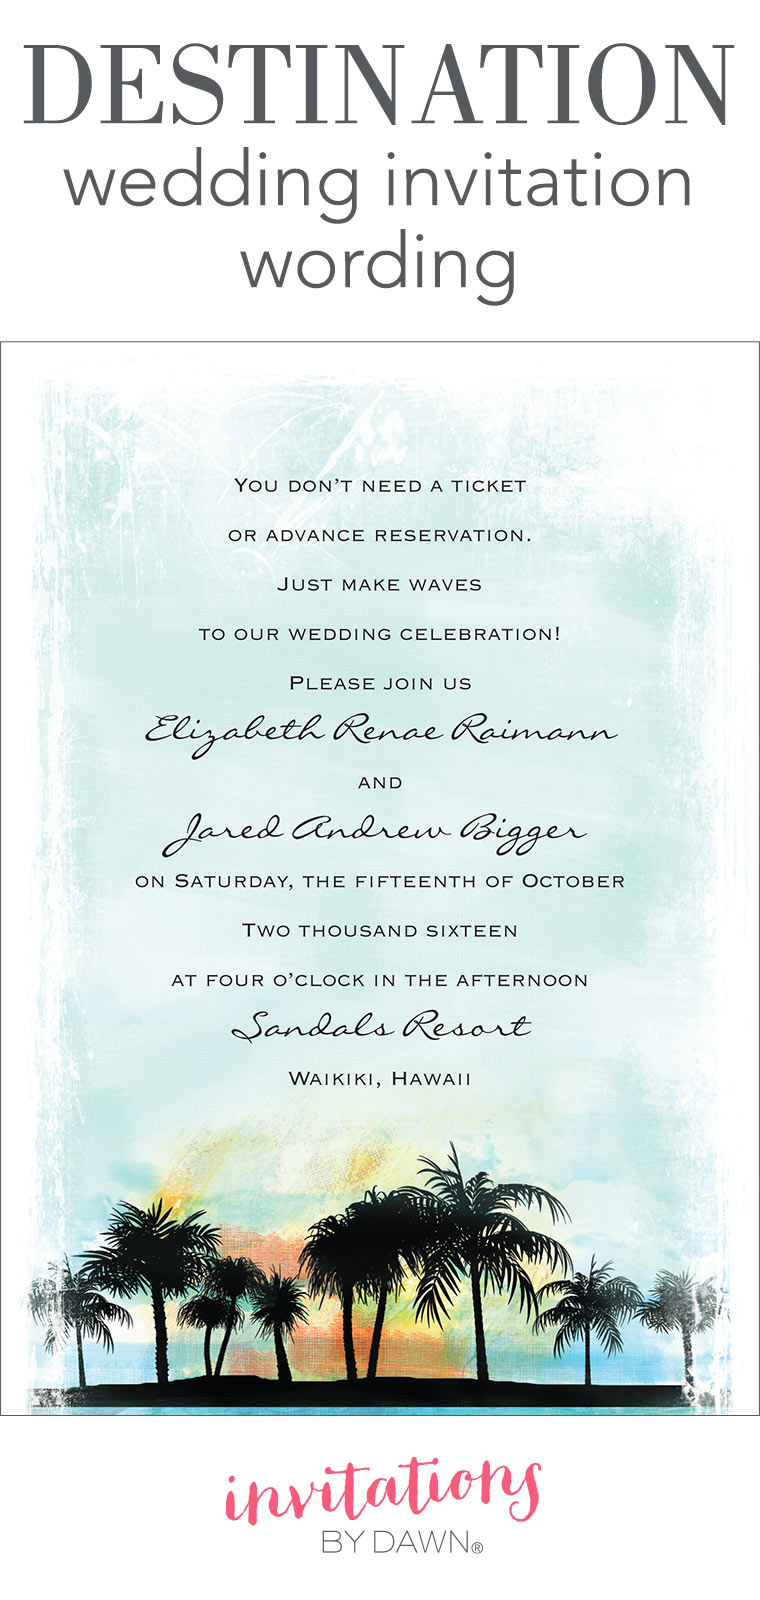 Destination Wedding Invitation Wording Invitations By Dawn